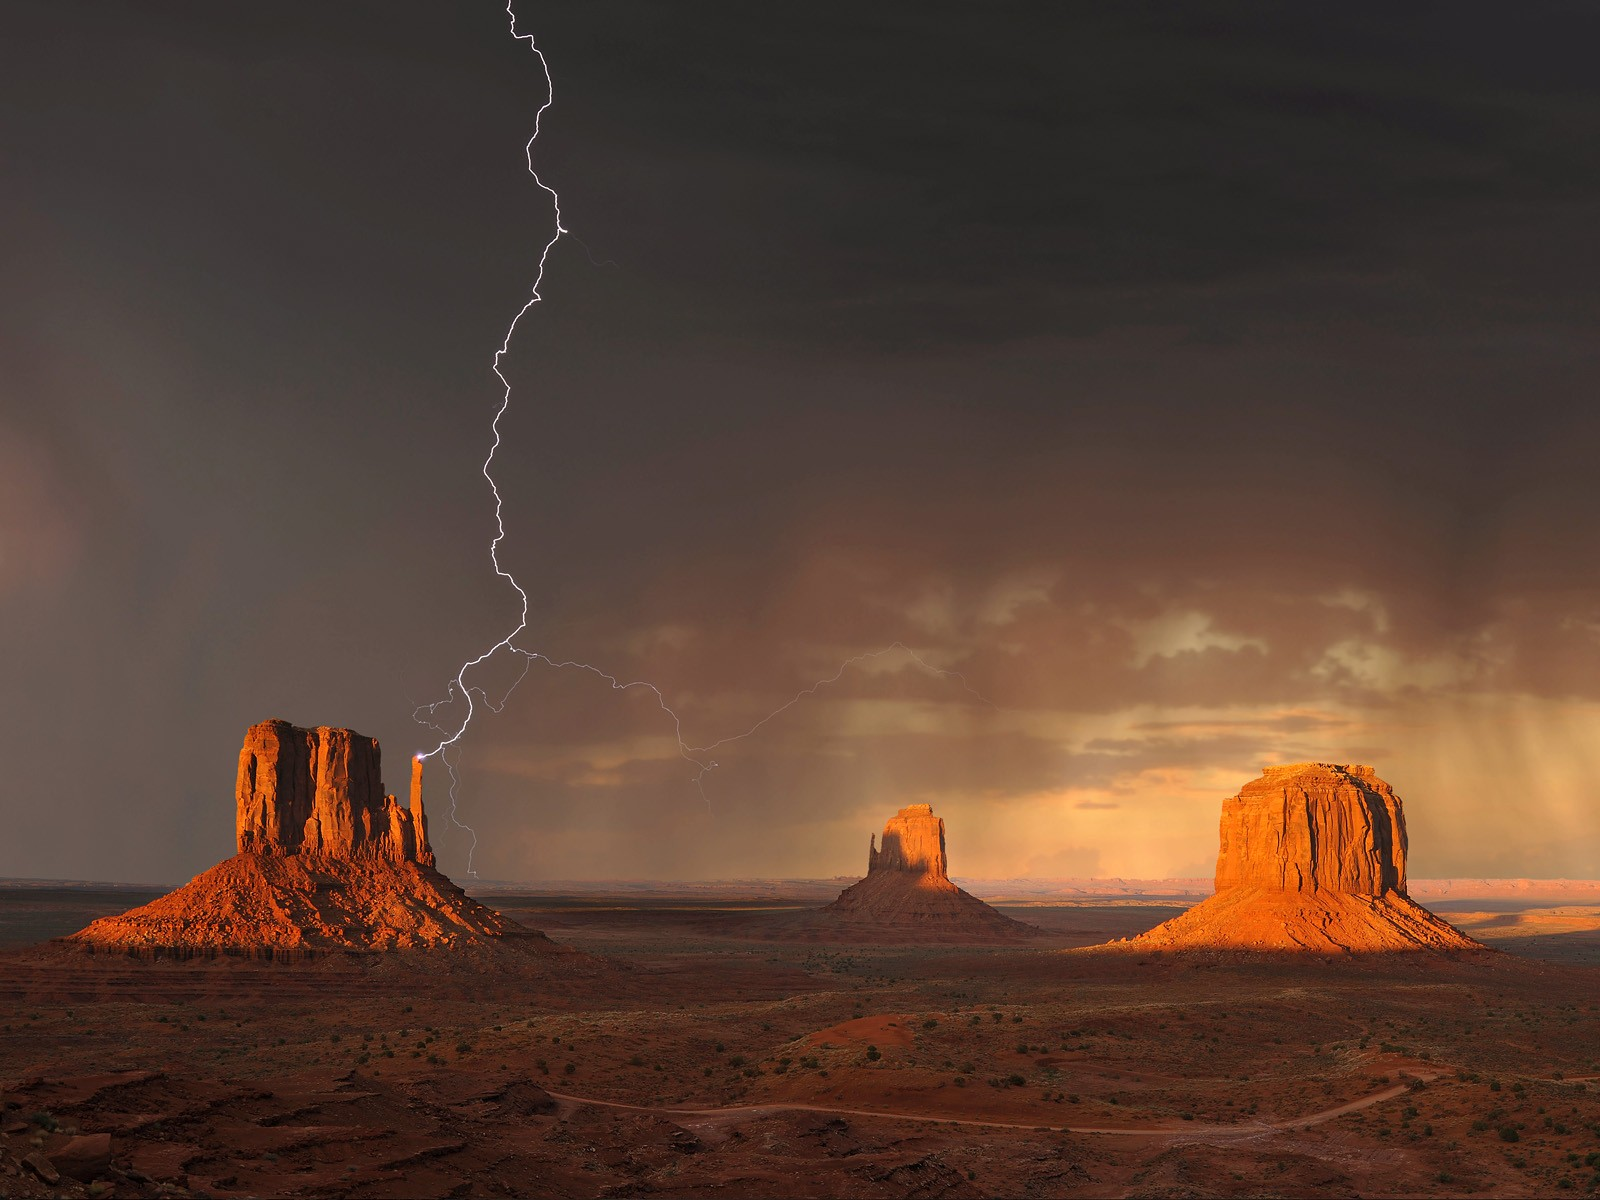 Photography - Lightning  - Desert - Landscape - Storm Wallpaper